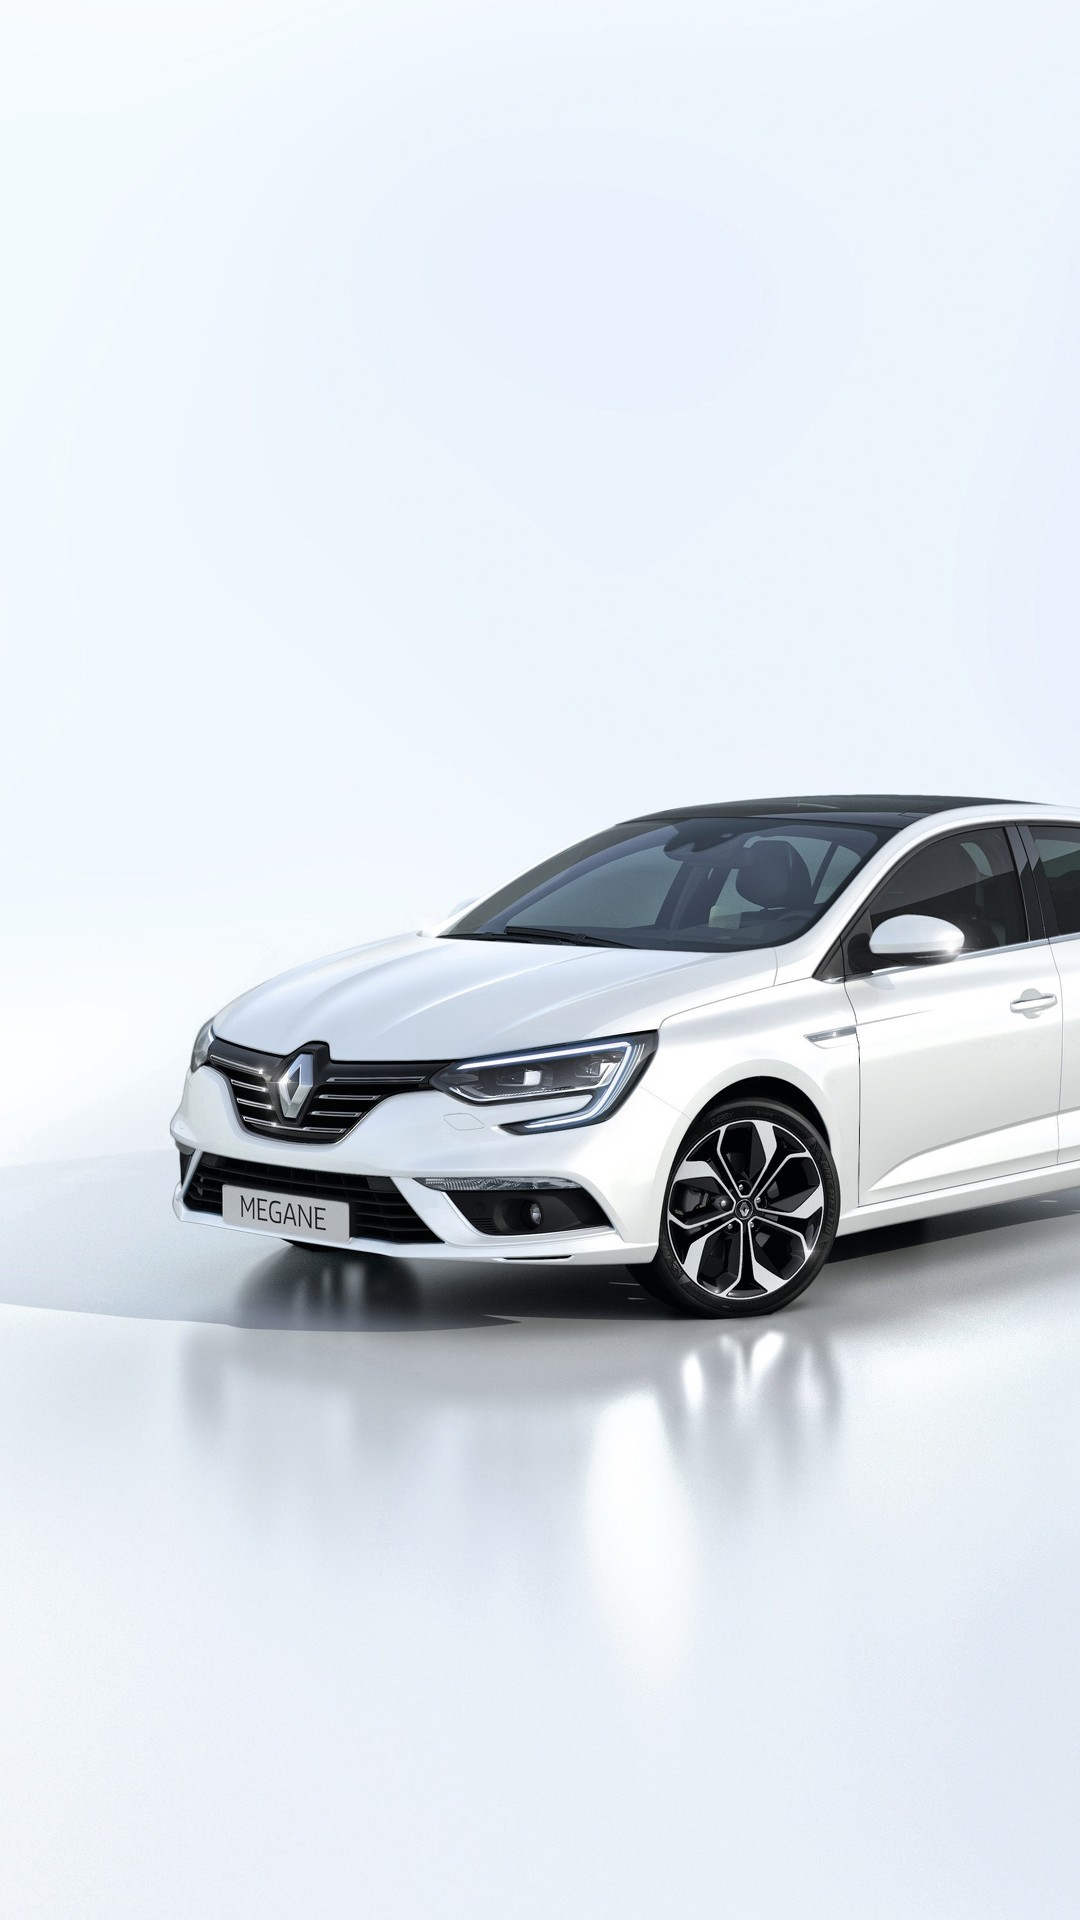 2017 Renault Megane Convertible photo - 2